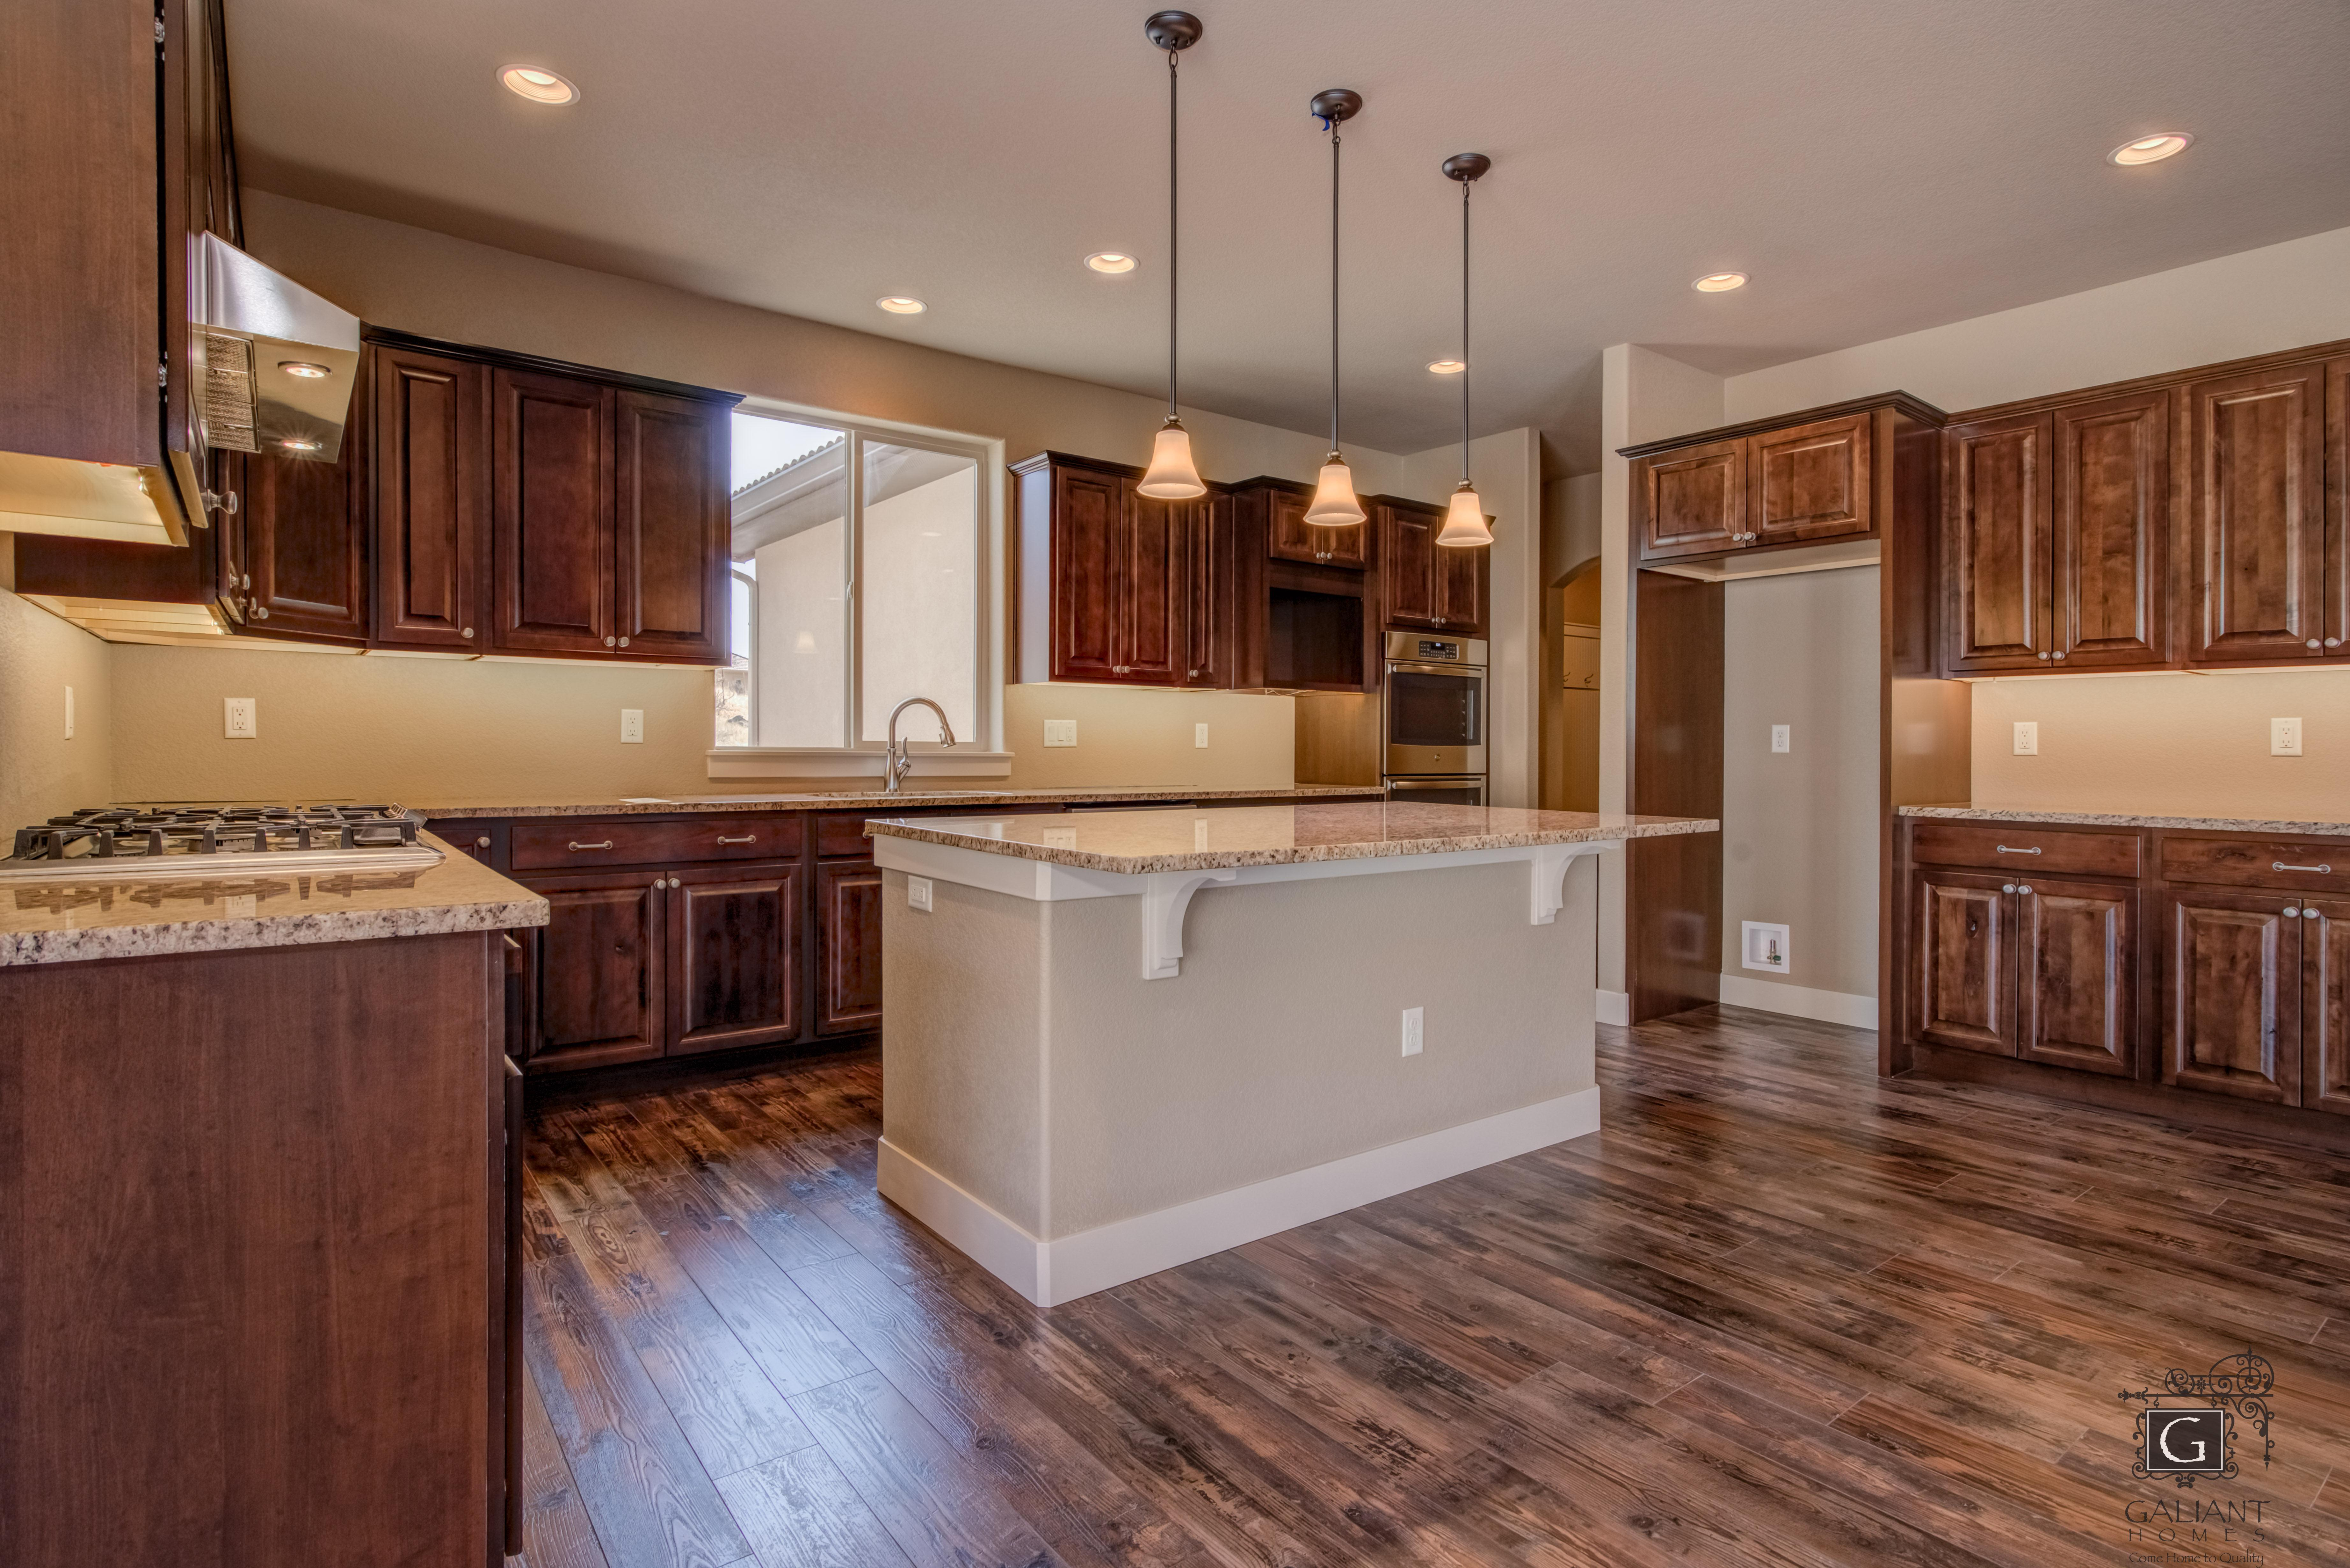 Kitchen featured in the Intrepid (Slab) By Galiant Homes in Colorado Springs, CO